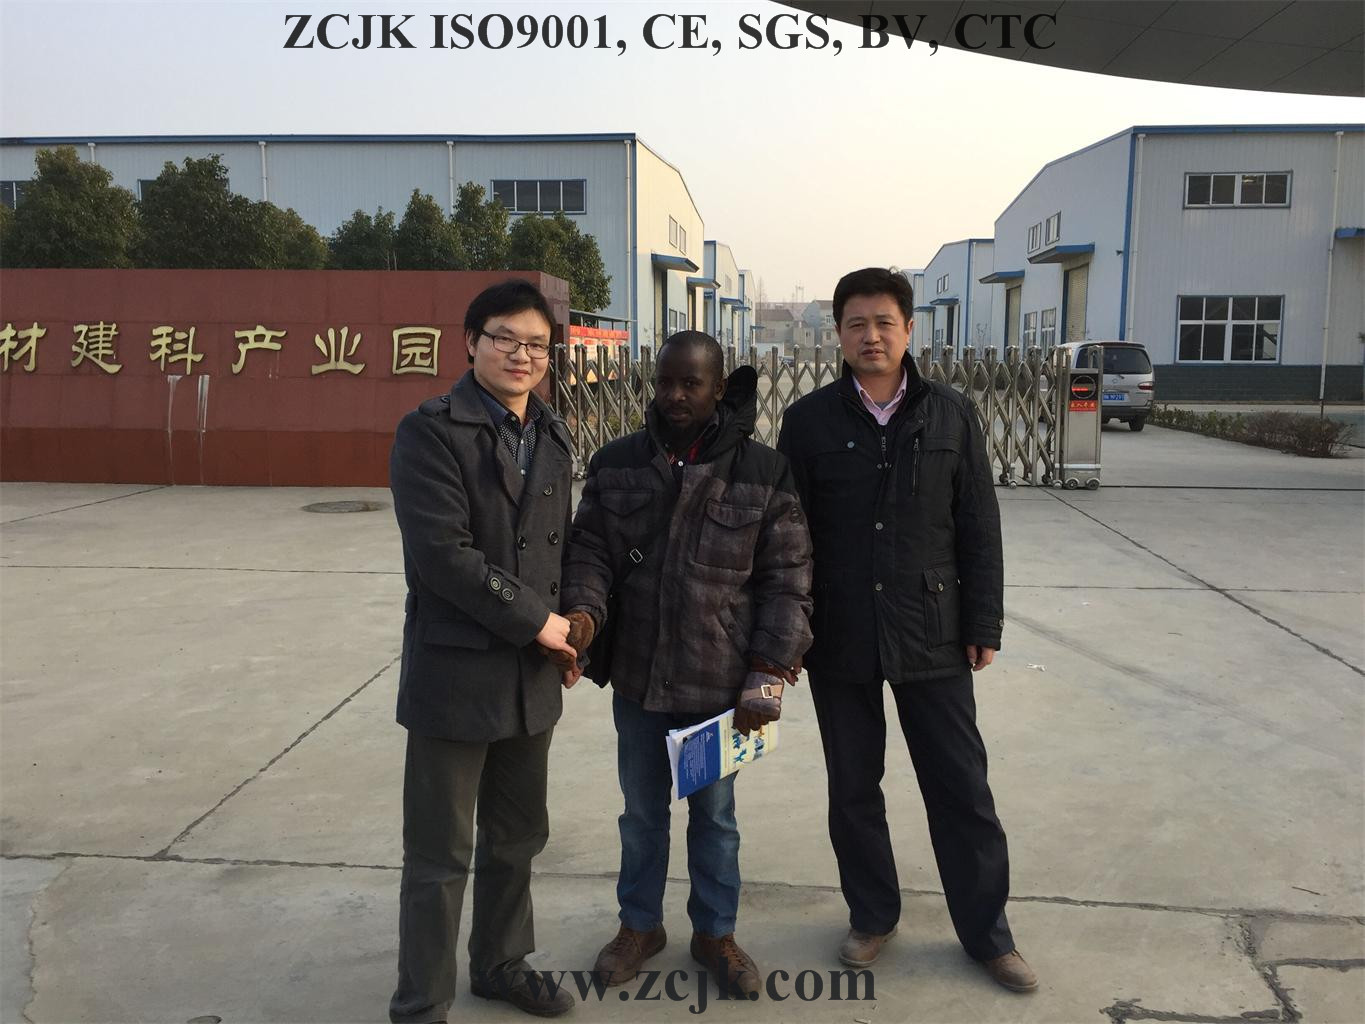 ZCJK Brick Machine Uganda Customer 20160115 (4)